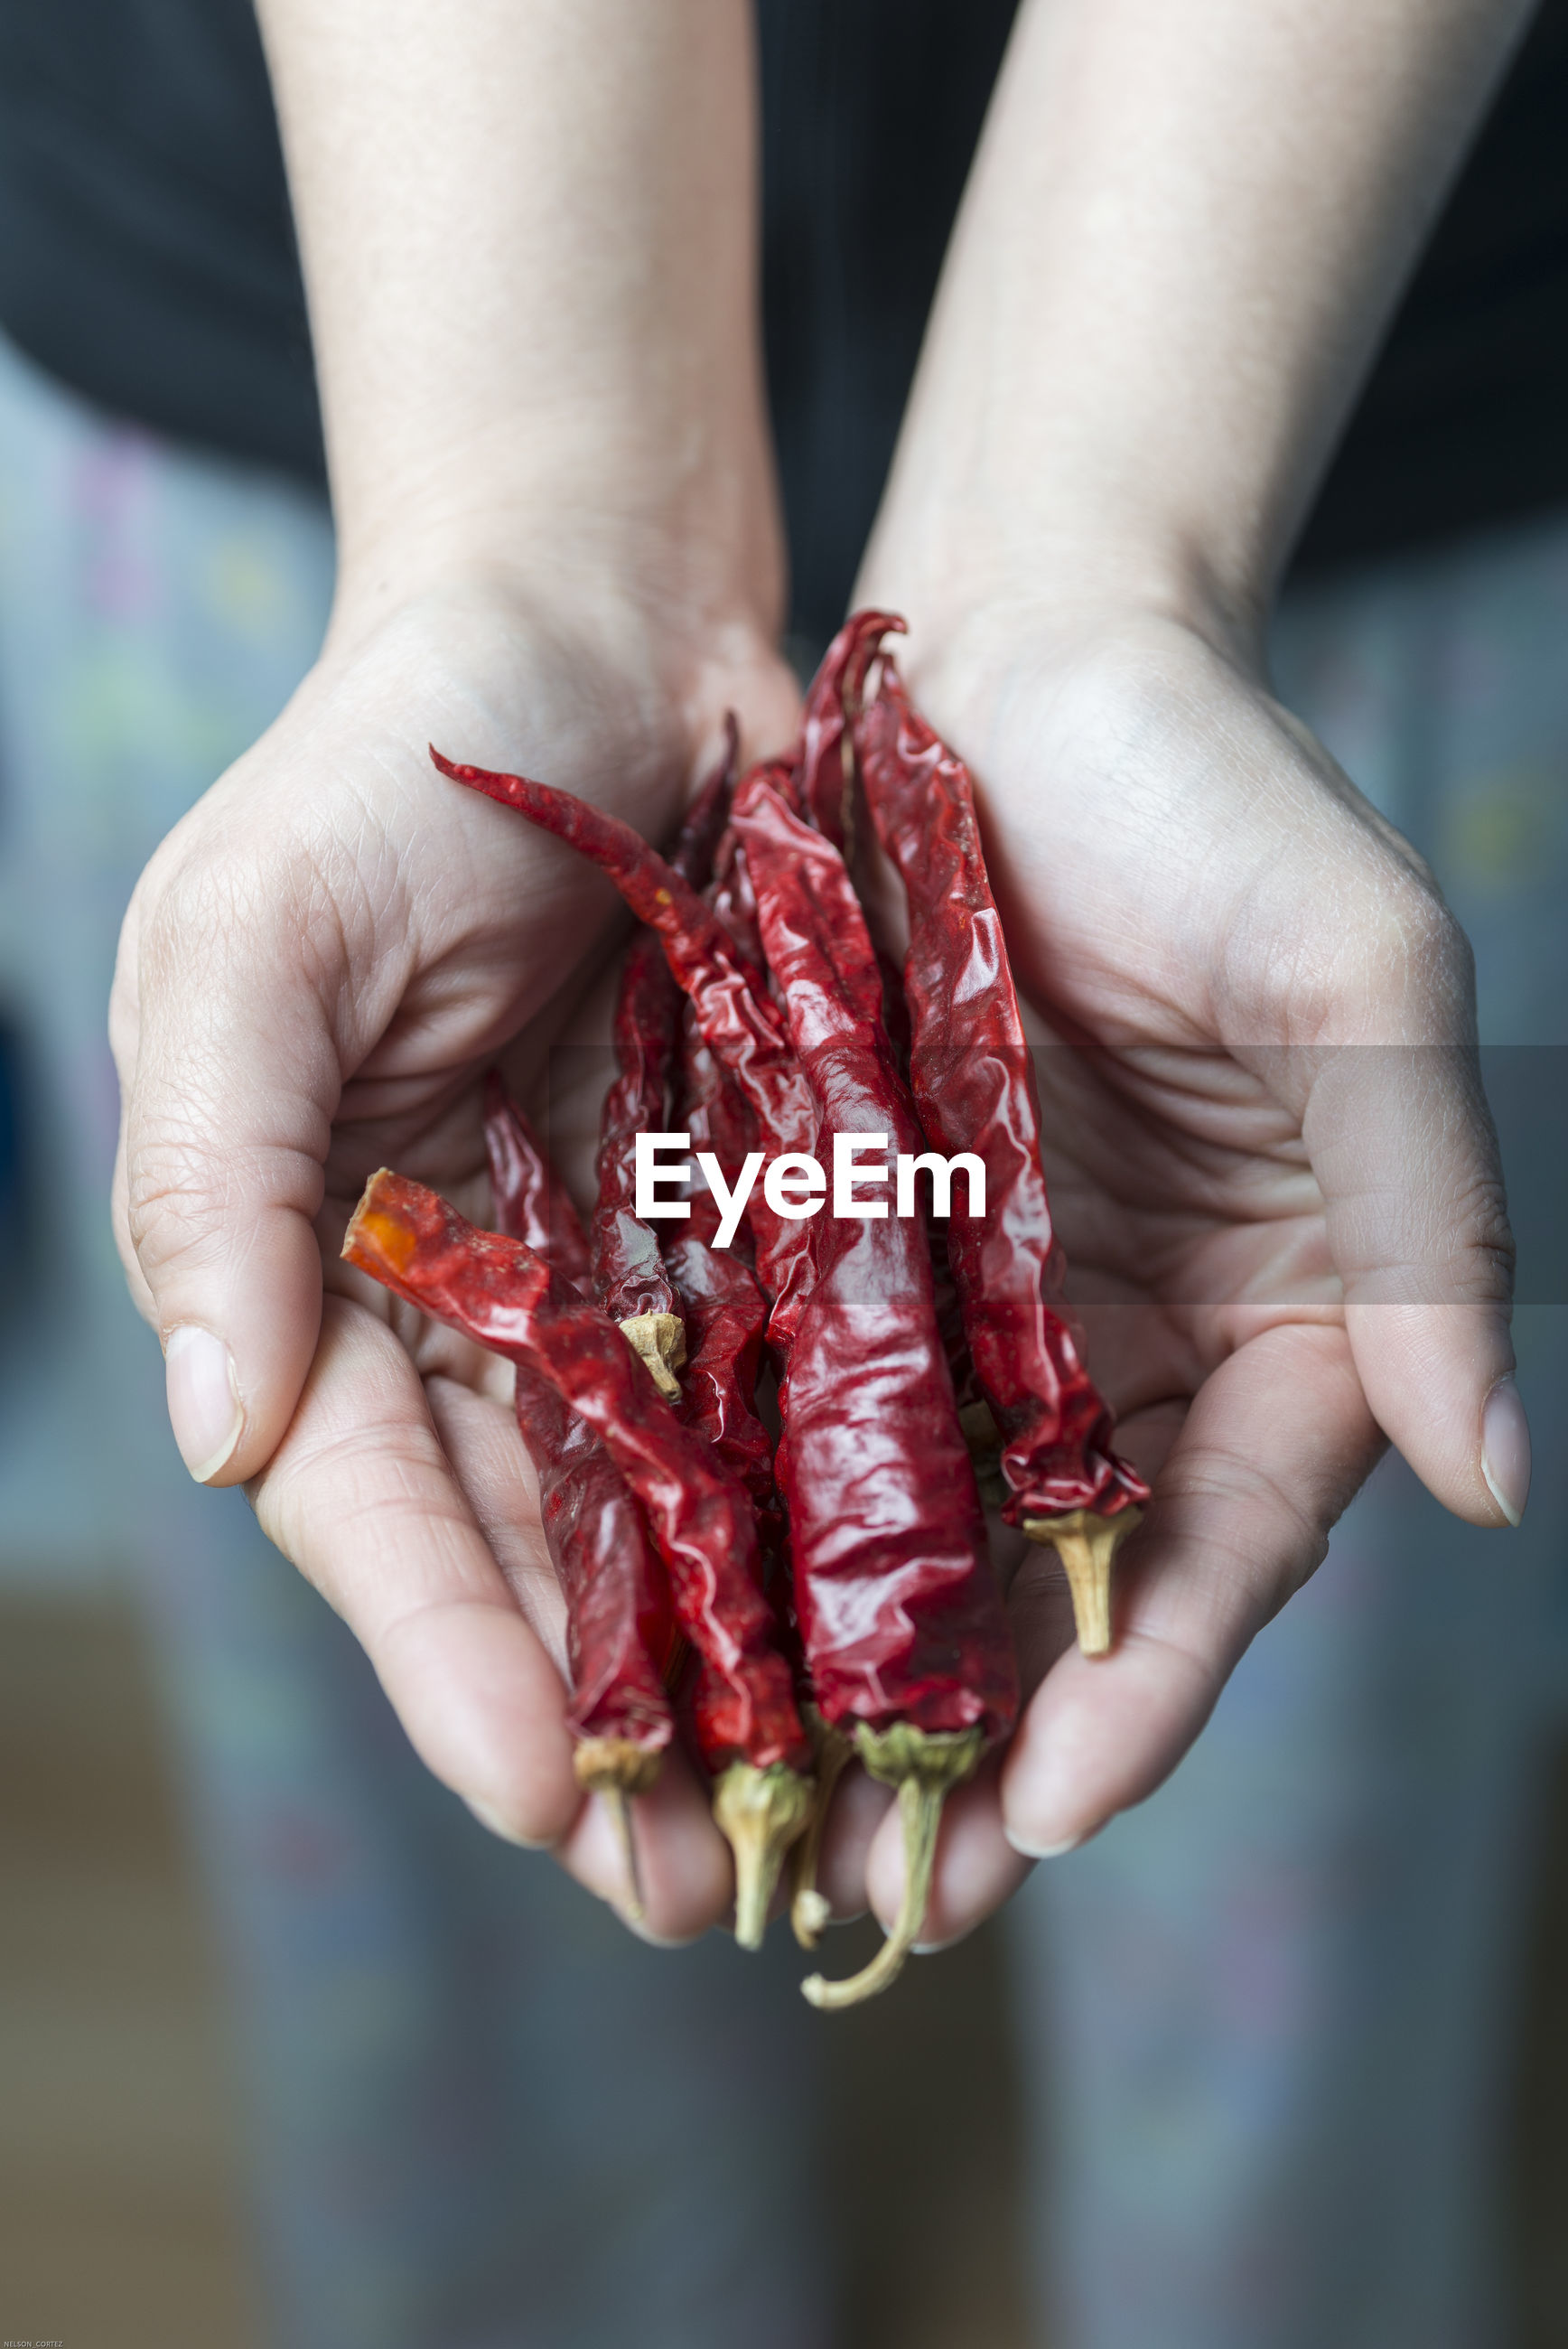 Midsection of woman holding red chili peppers